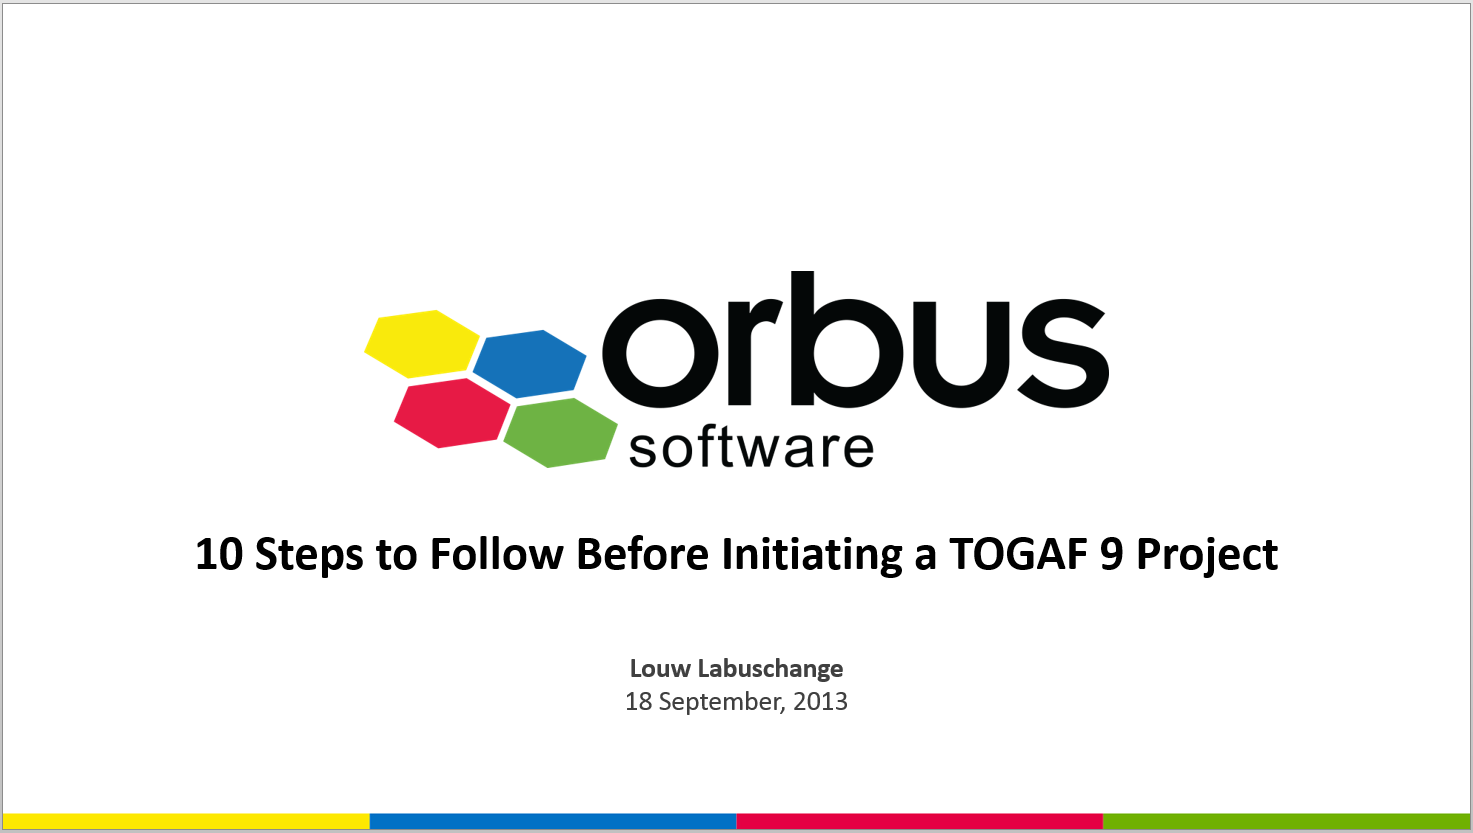 10 Steps to Follow Before Initiating a TOGAF® 9 Project